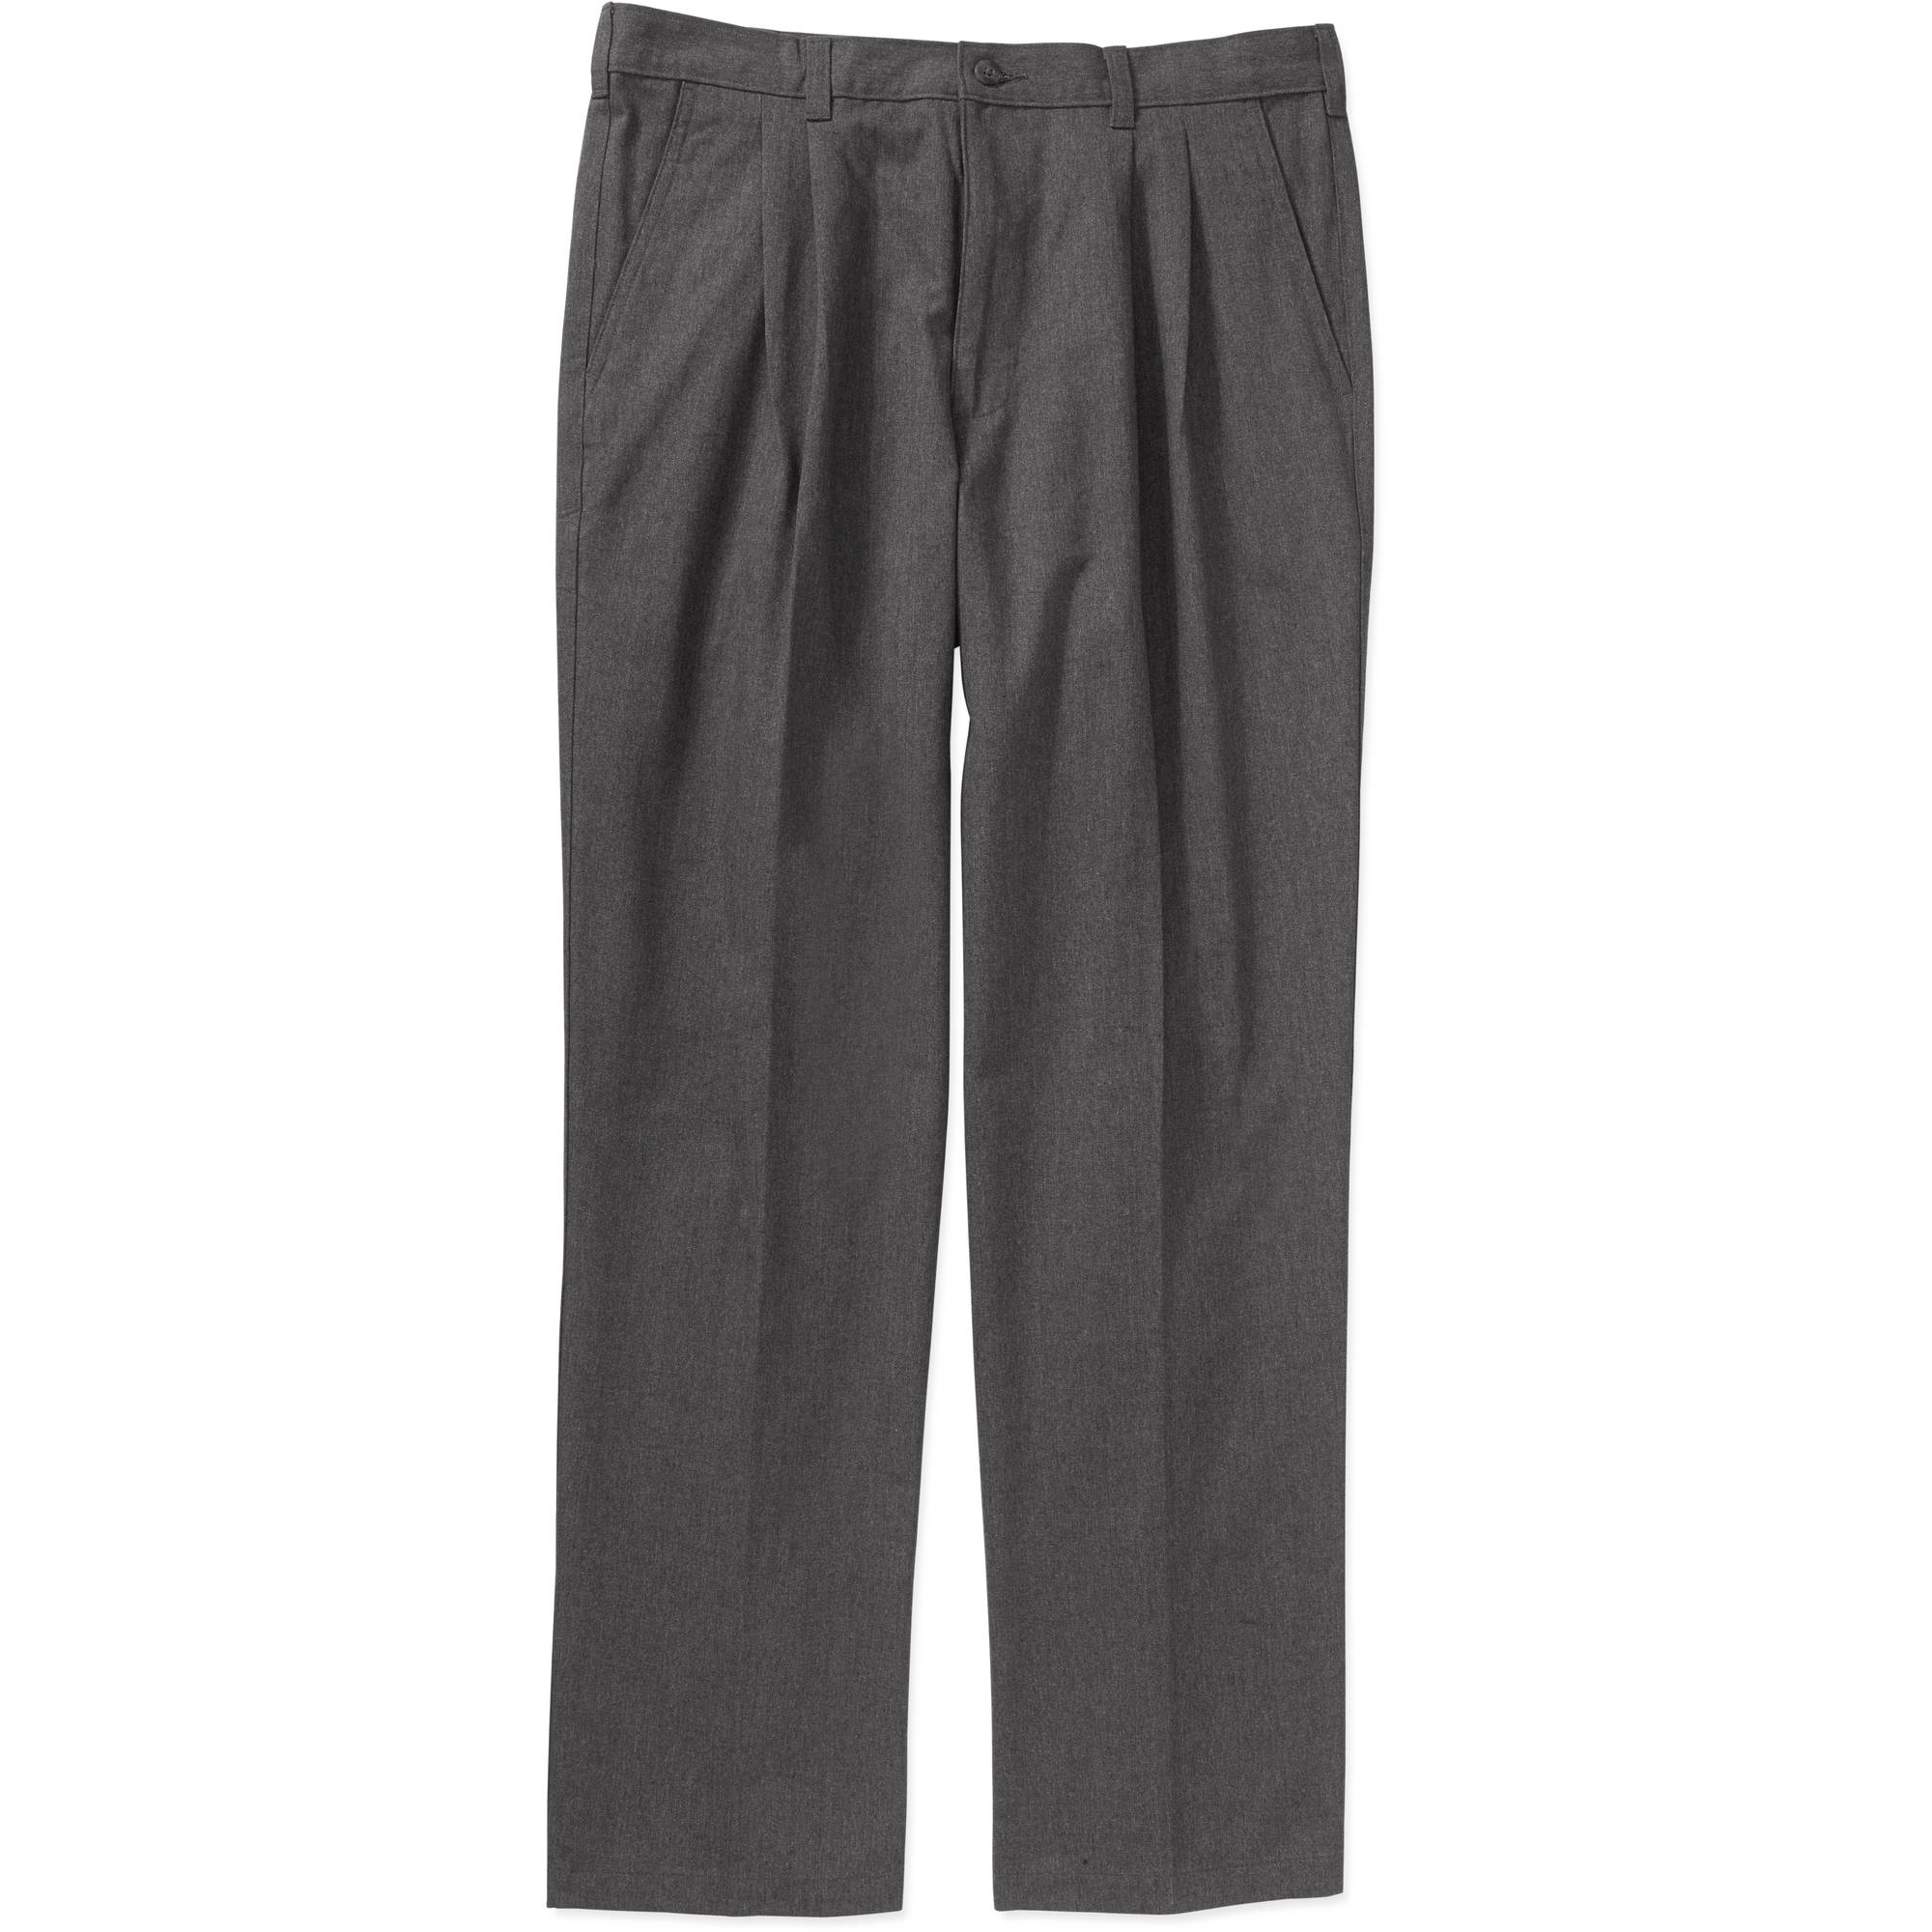 George Big Men's Pleated Front Pant